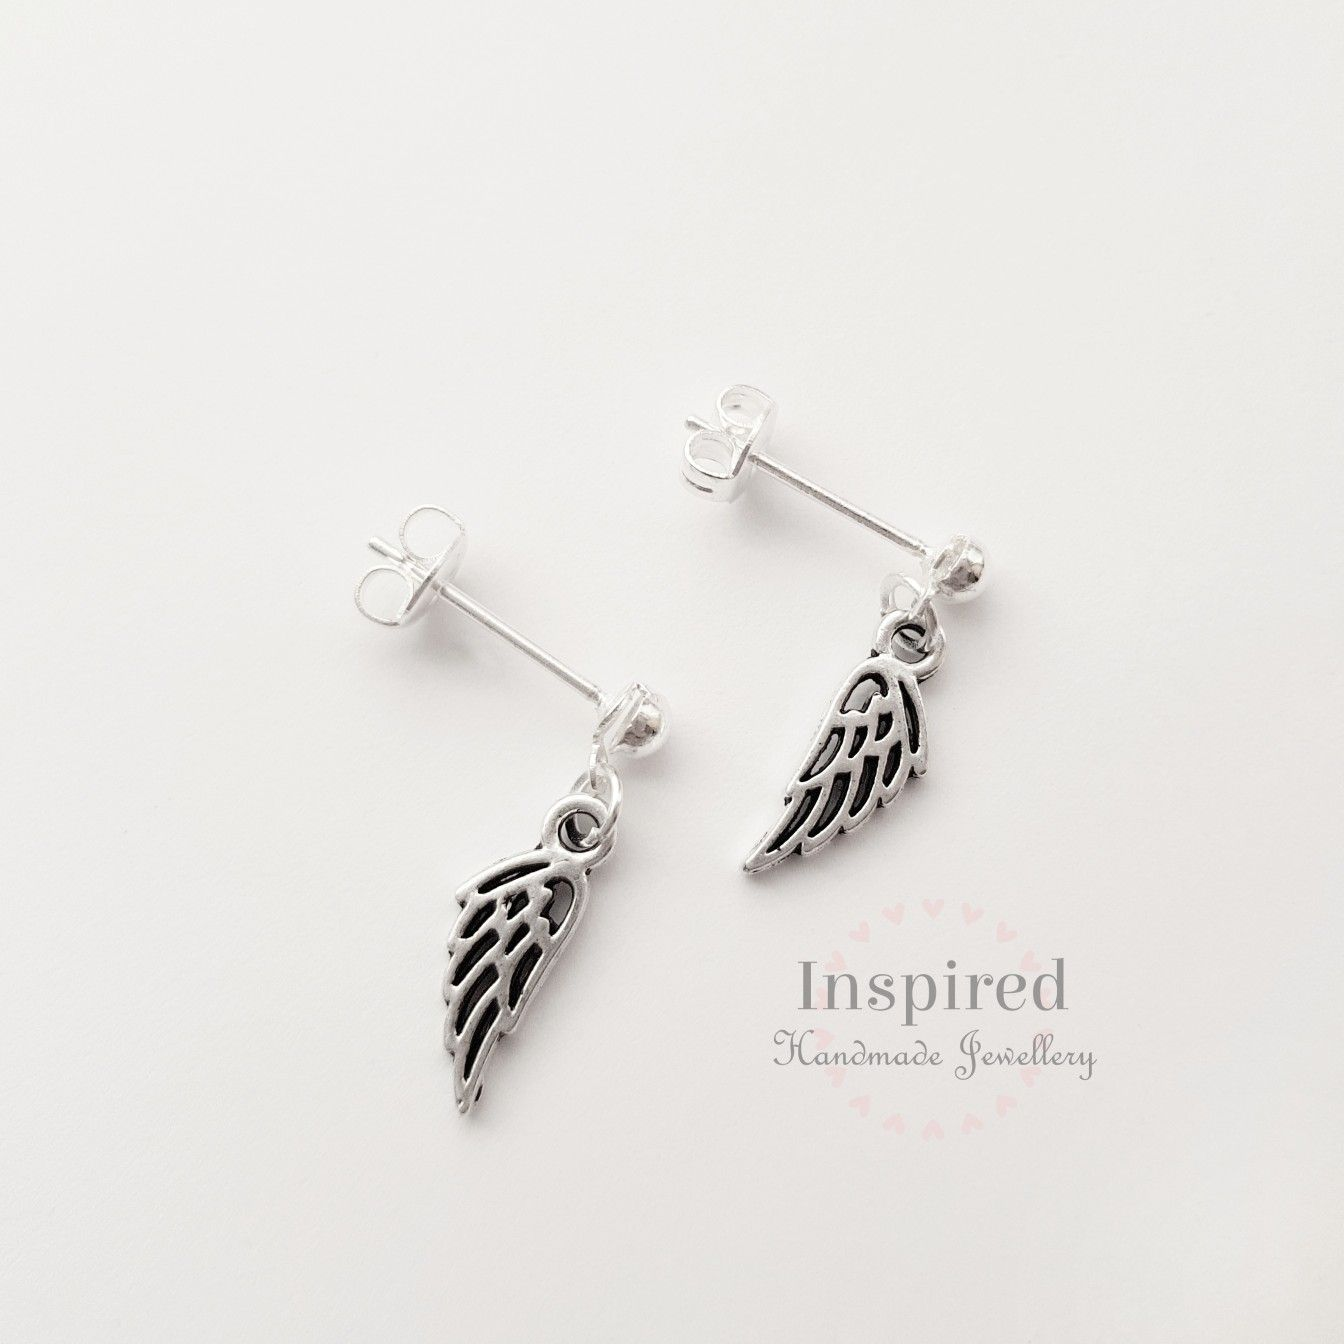 316L Surgical Steel Silver Plated Tragus//Cartilage Stud with Angel Wing Dangle